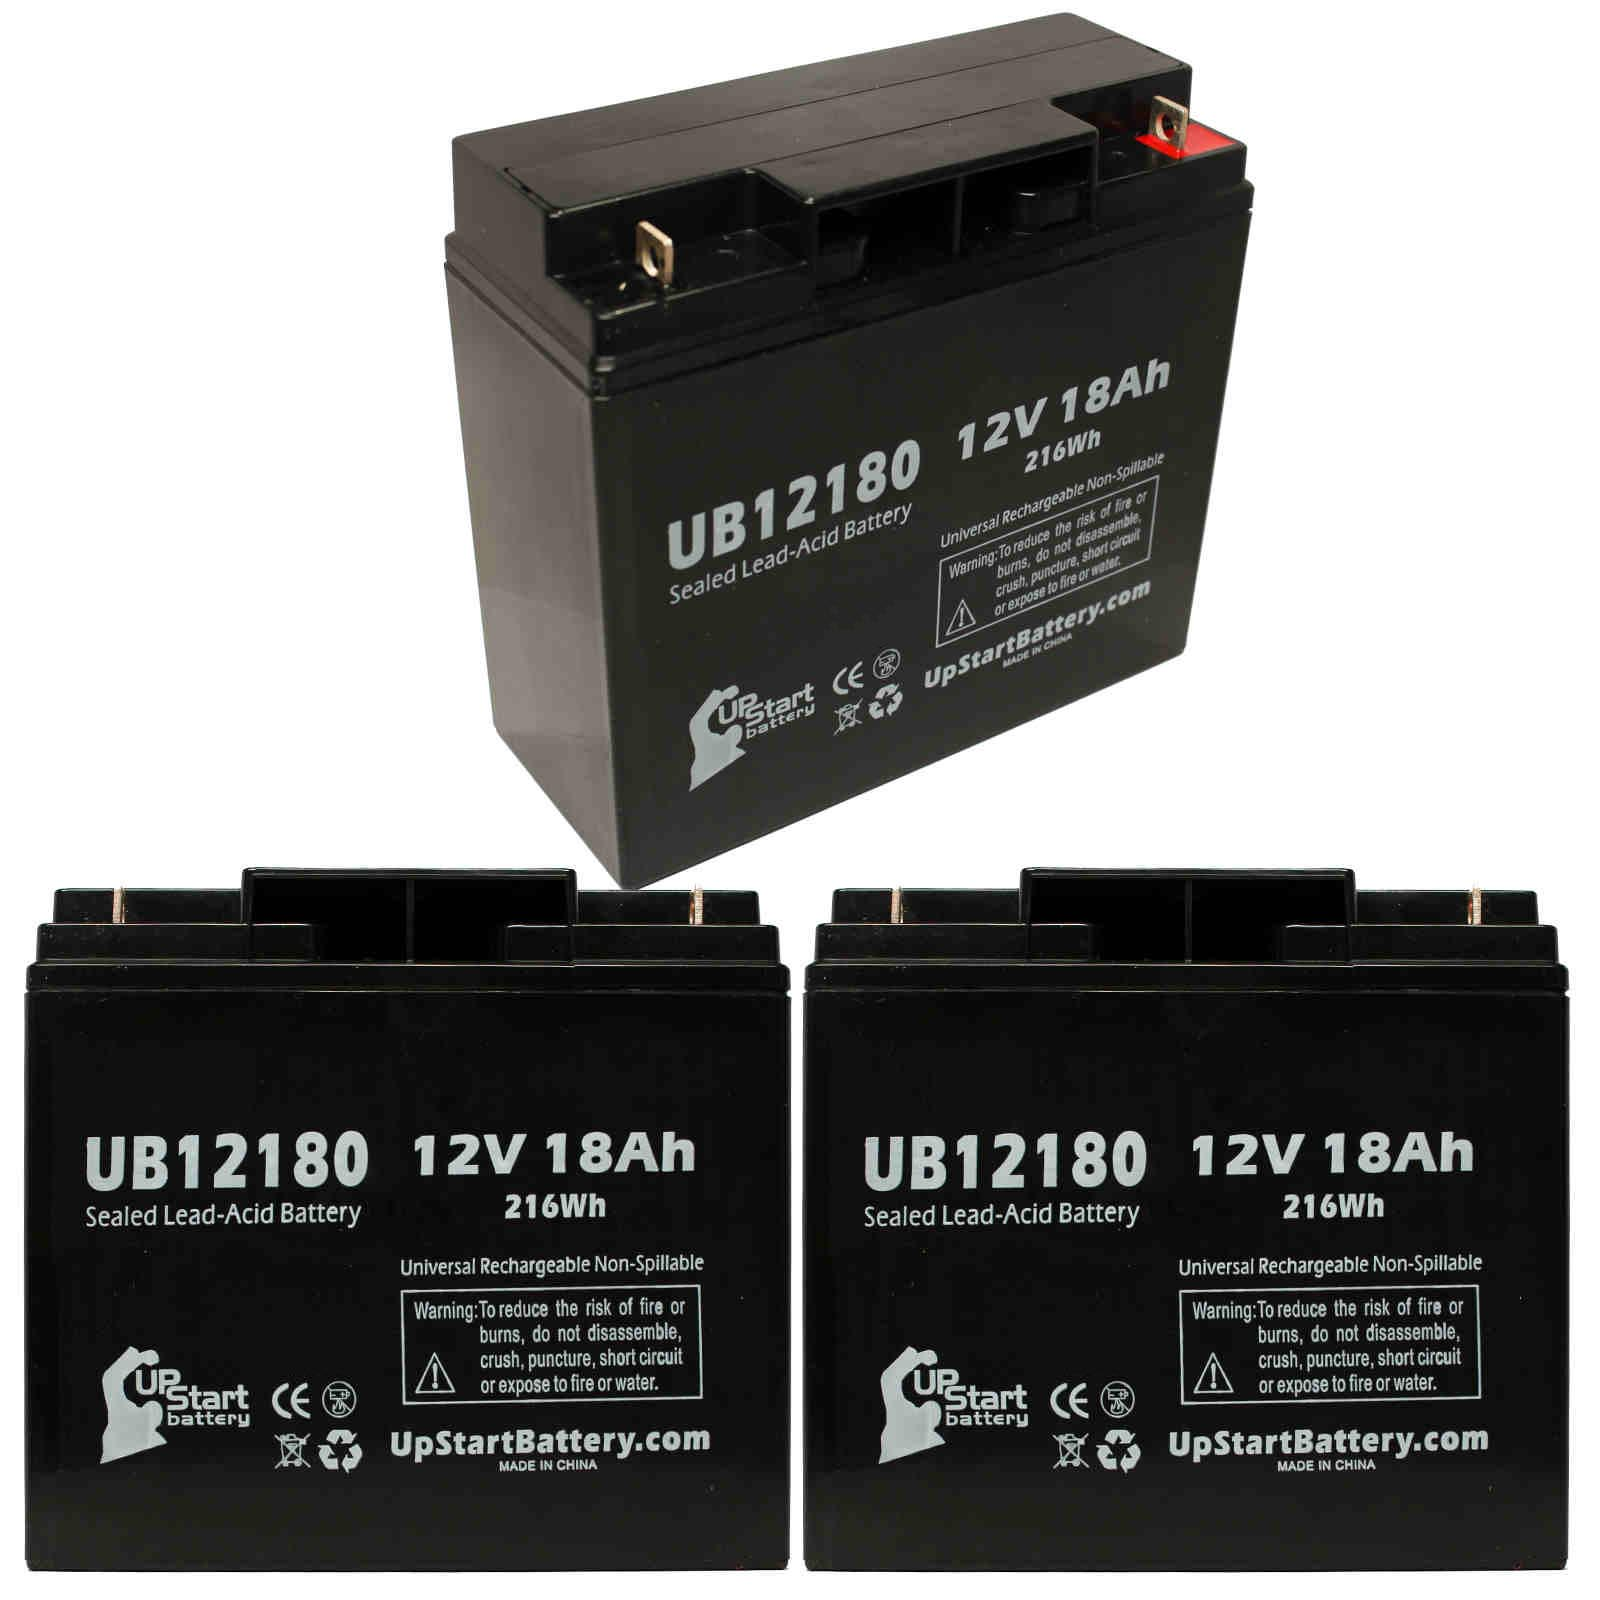 UpStart Battery 3x Pack - SEARS CRAFTSMAN DIEHARD PORTABLE POWER 1150 Battery - Replacement UB12180 SLA Battery (12V, 18Ah, T4 Terminal) at Sears.com